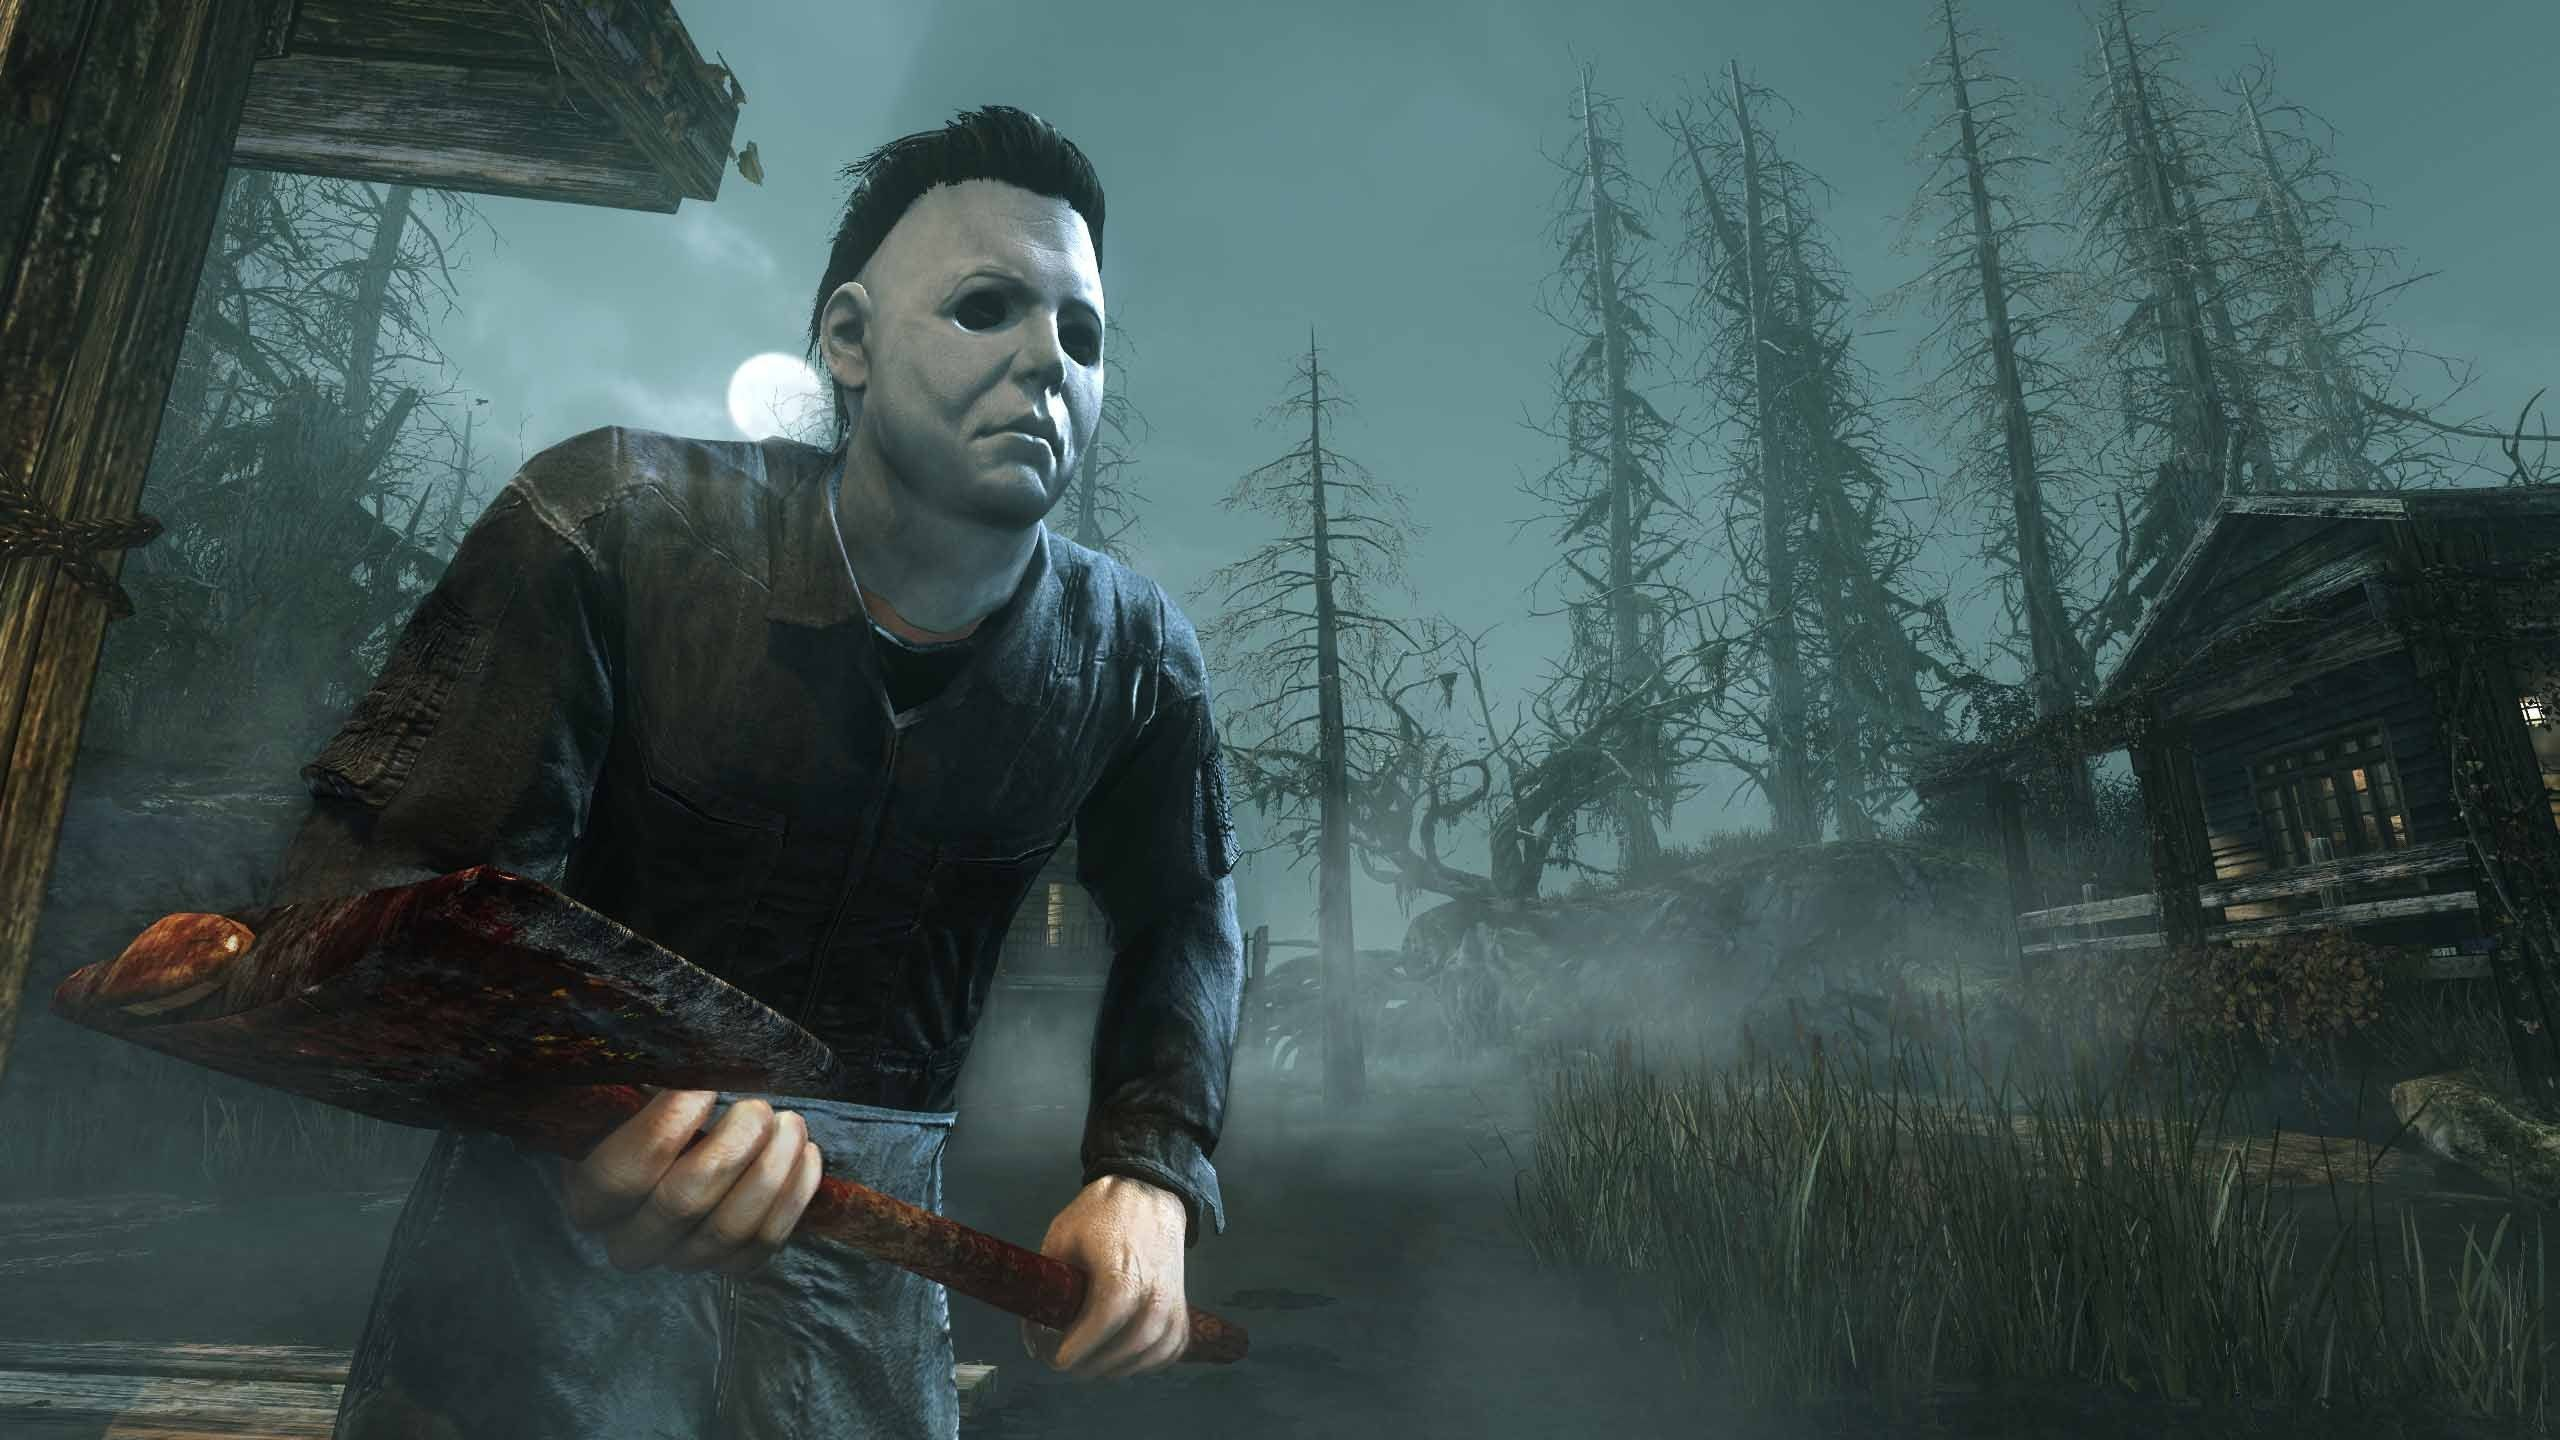 2560x1440 Hd B Michael Myers B Halloween B Wallpaper